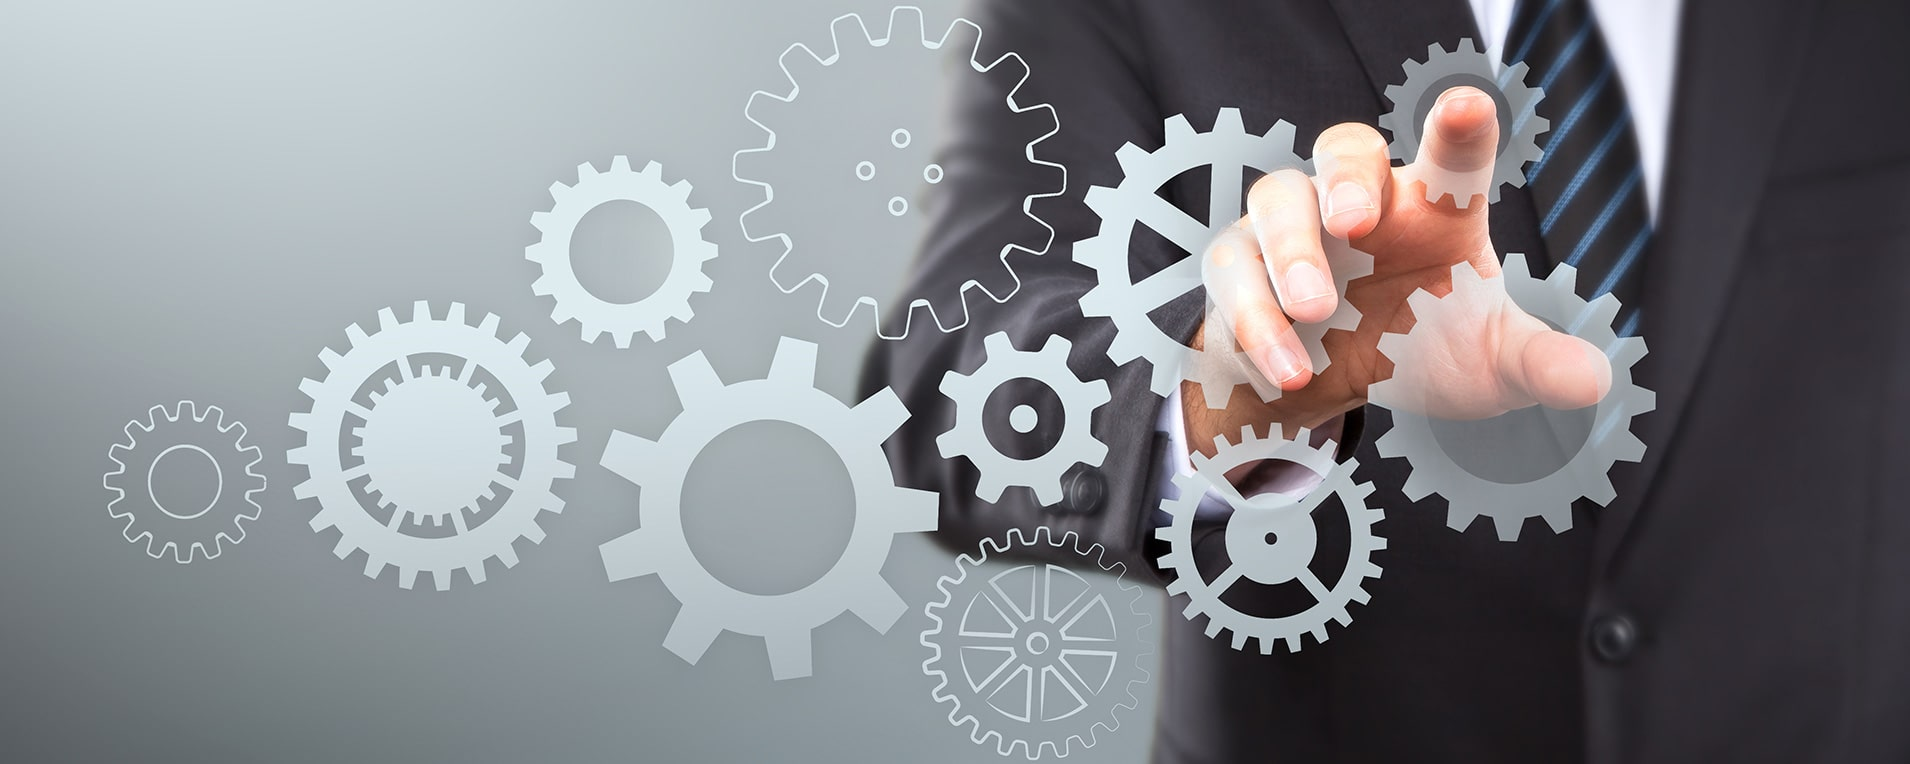 Why Should Your Business Choose Marketo for Marketing Automation?